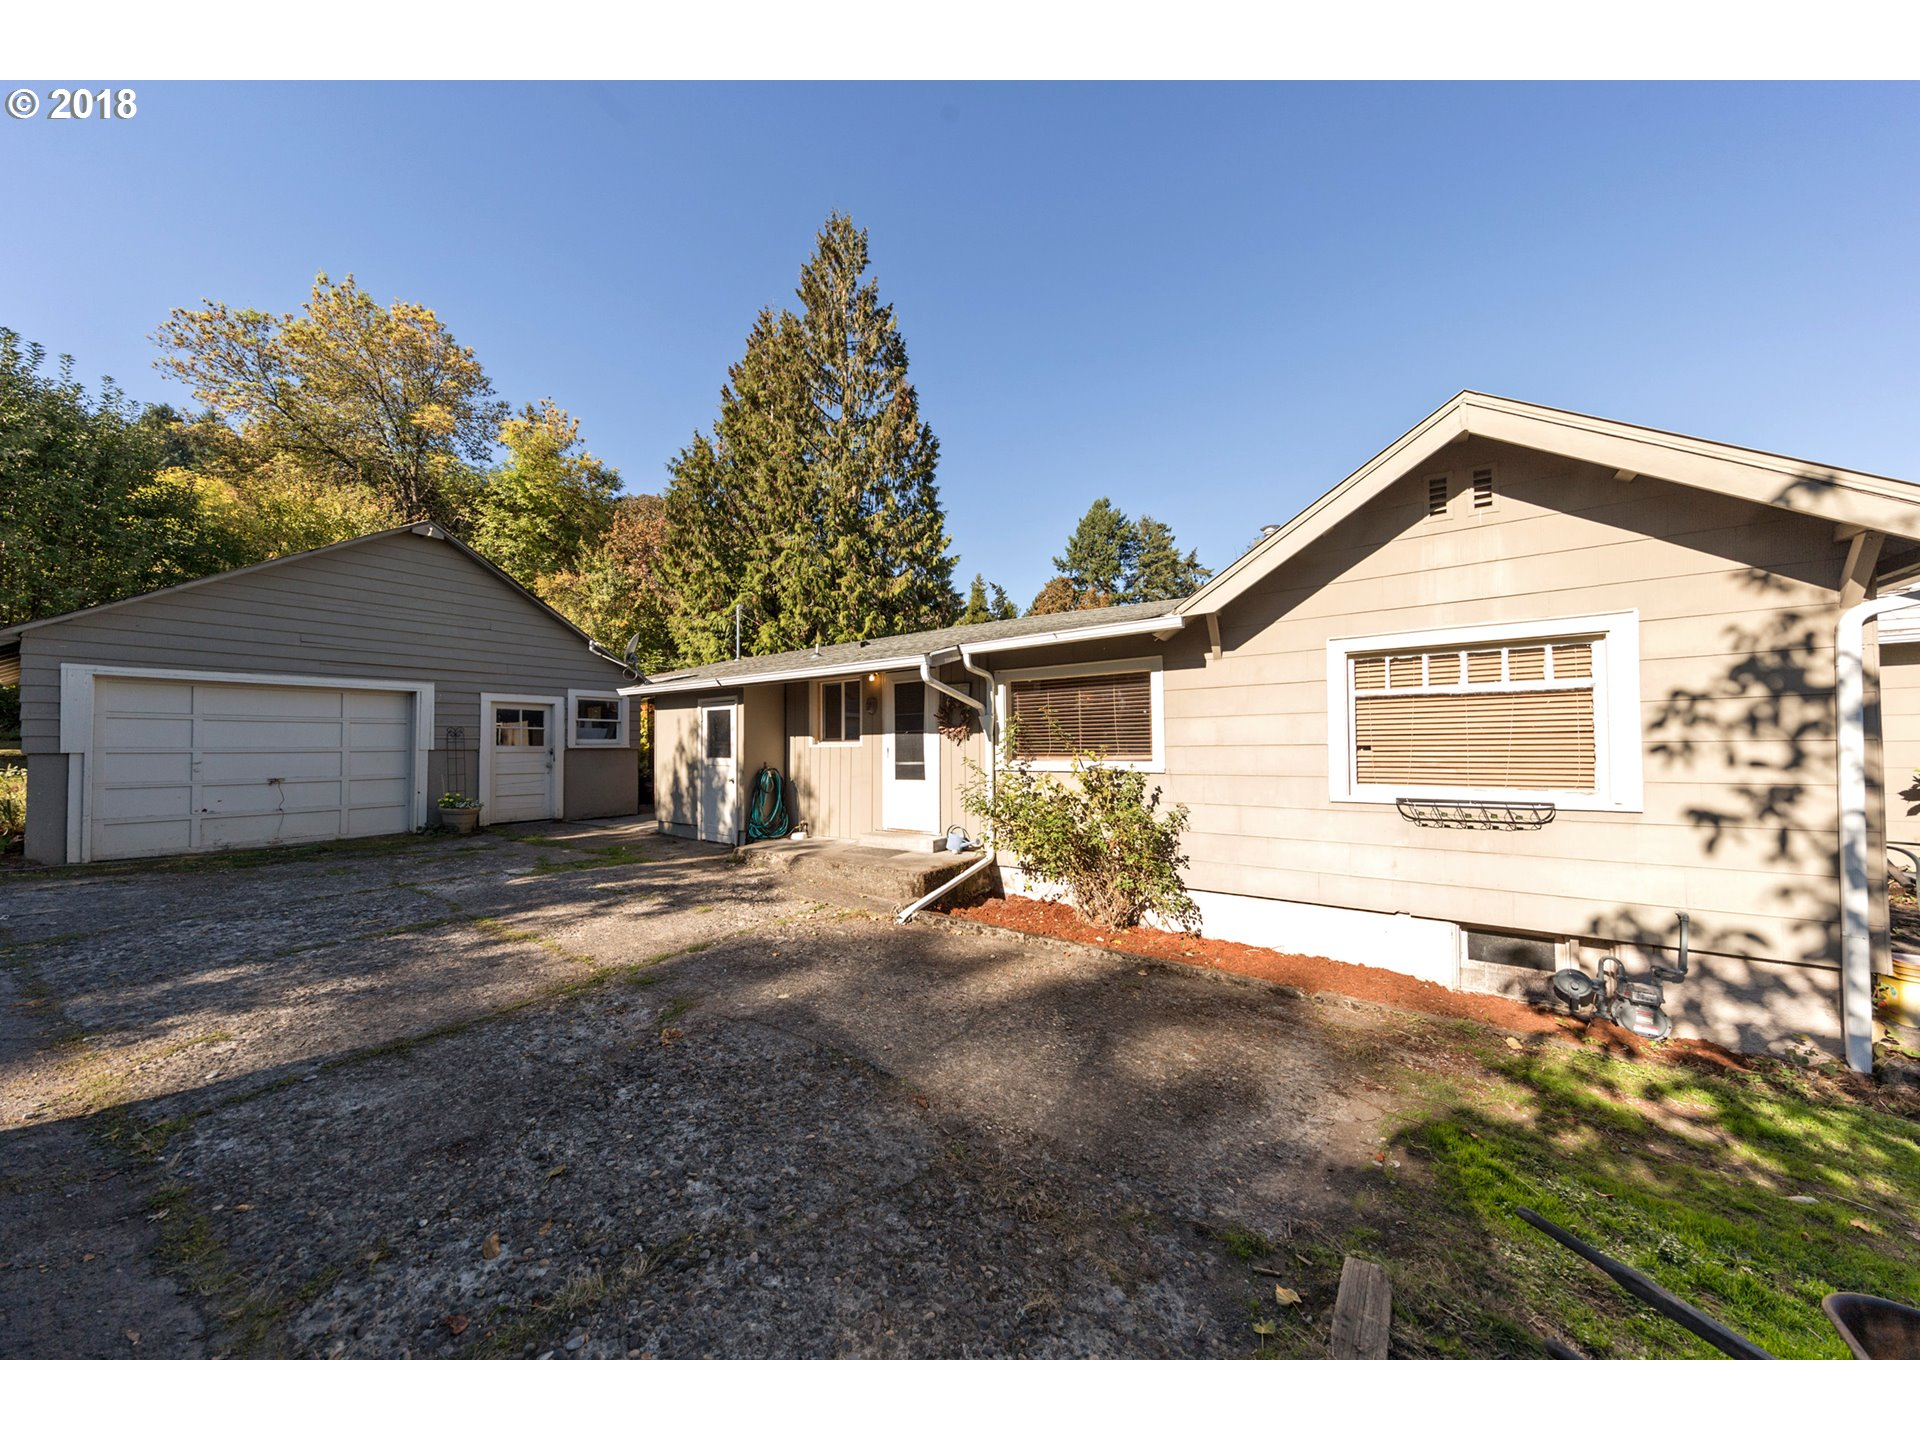 19600 VIEW DR, West Linn, OR 97068